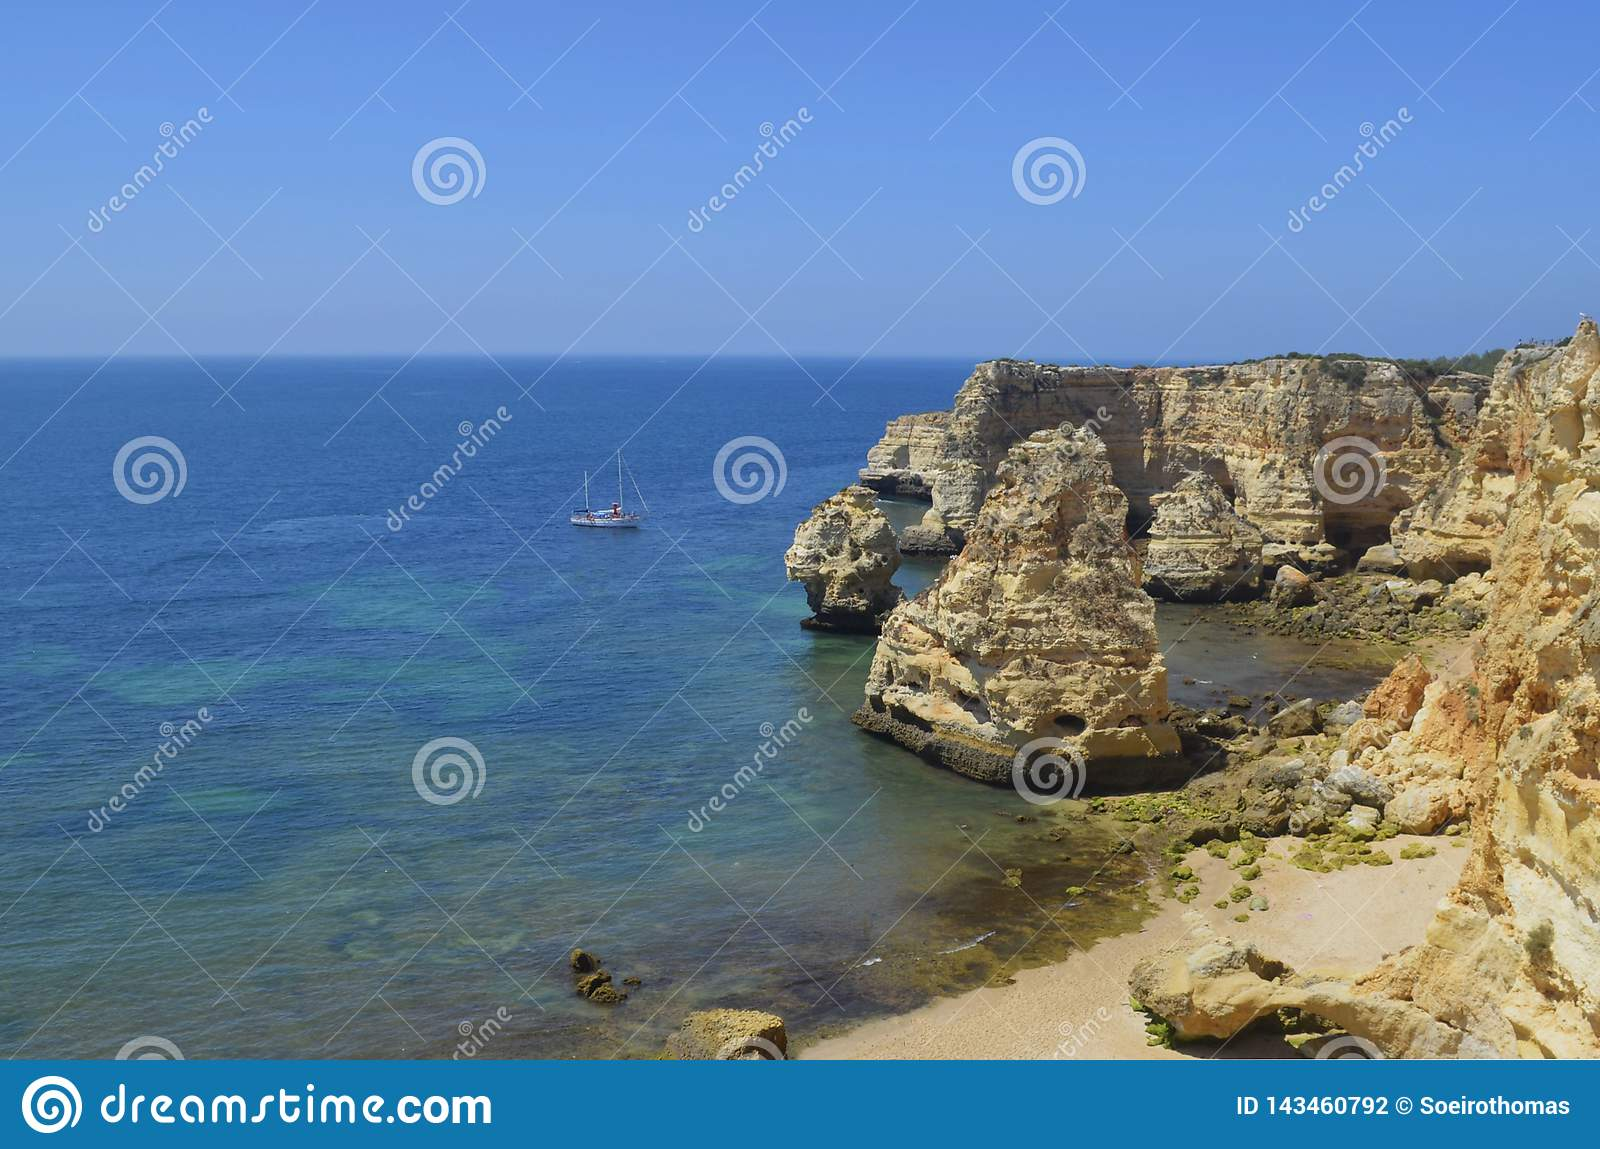 Sailboat on deserted beach and cliffs